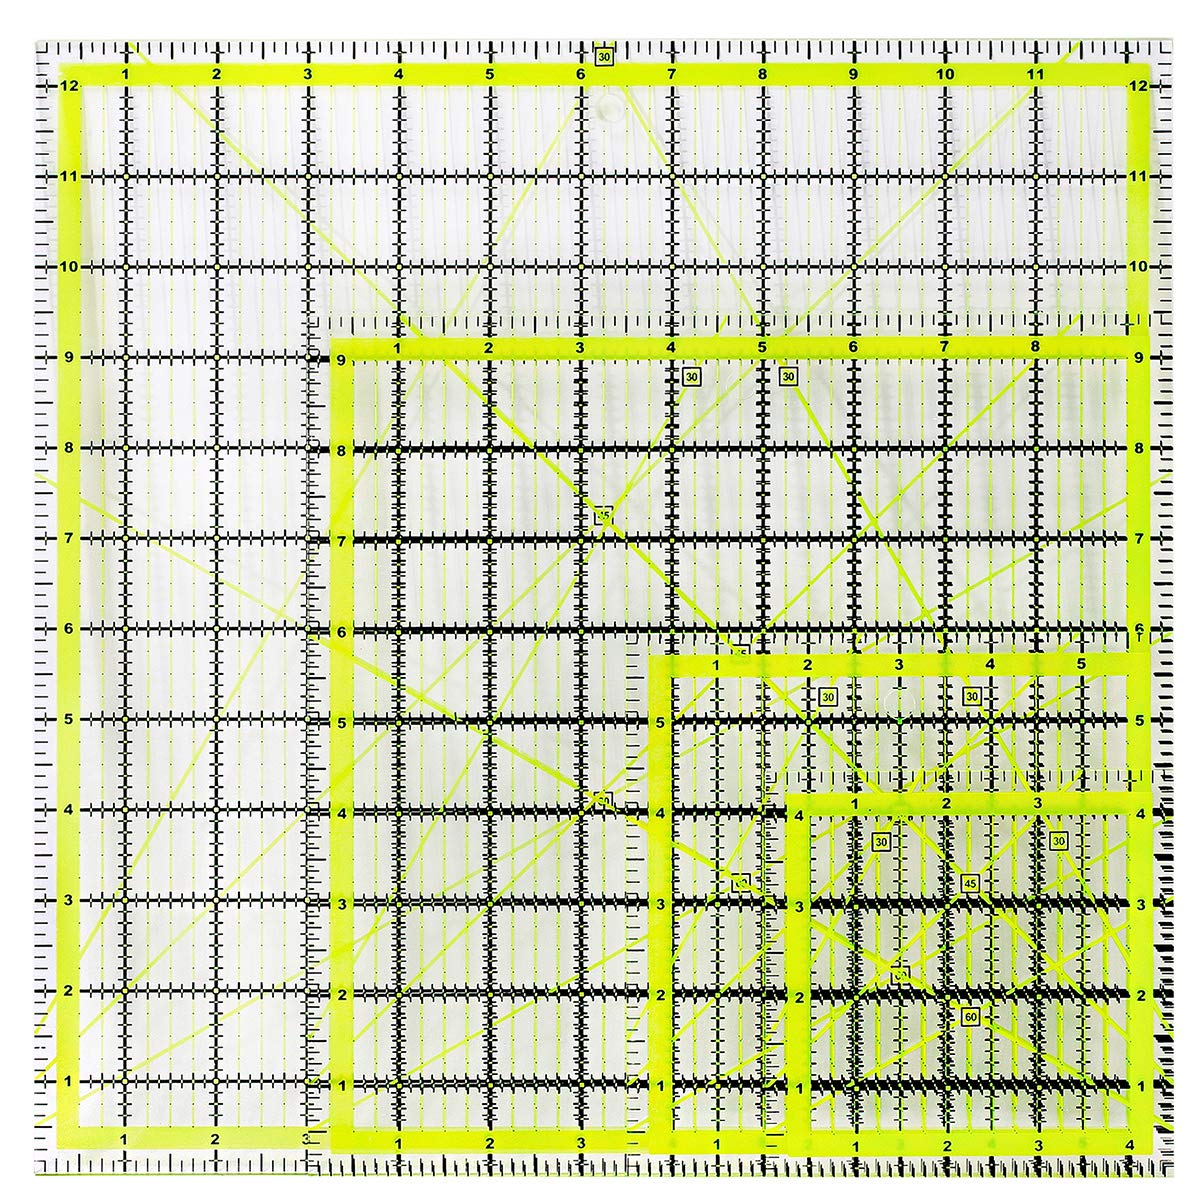 UOOU 4 Pack Quilting Ruler, Square Quilting Rulers Fabric Cutting Ruler Acrylic Quilters Rulers Clear Mark with Non Slip Rings for Quilting and Sewing(4.5''X4.5'', 6''X6'', 9.5''X9.5'', 12.5''X12.5'') by UOOU